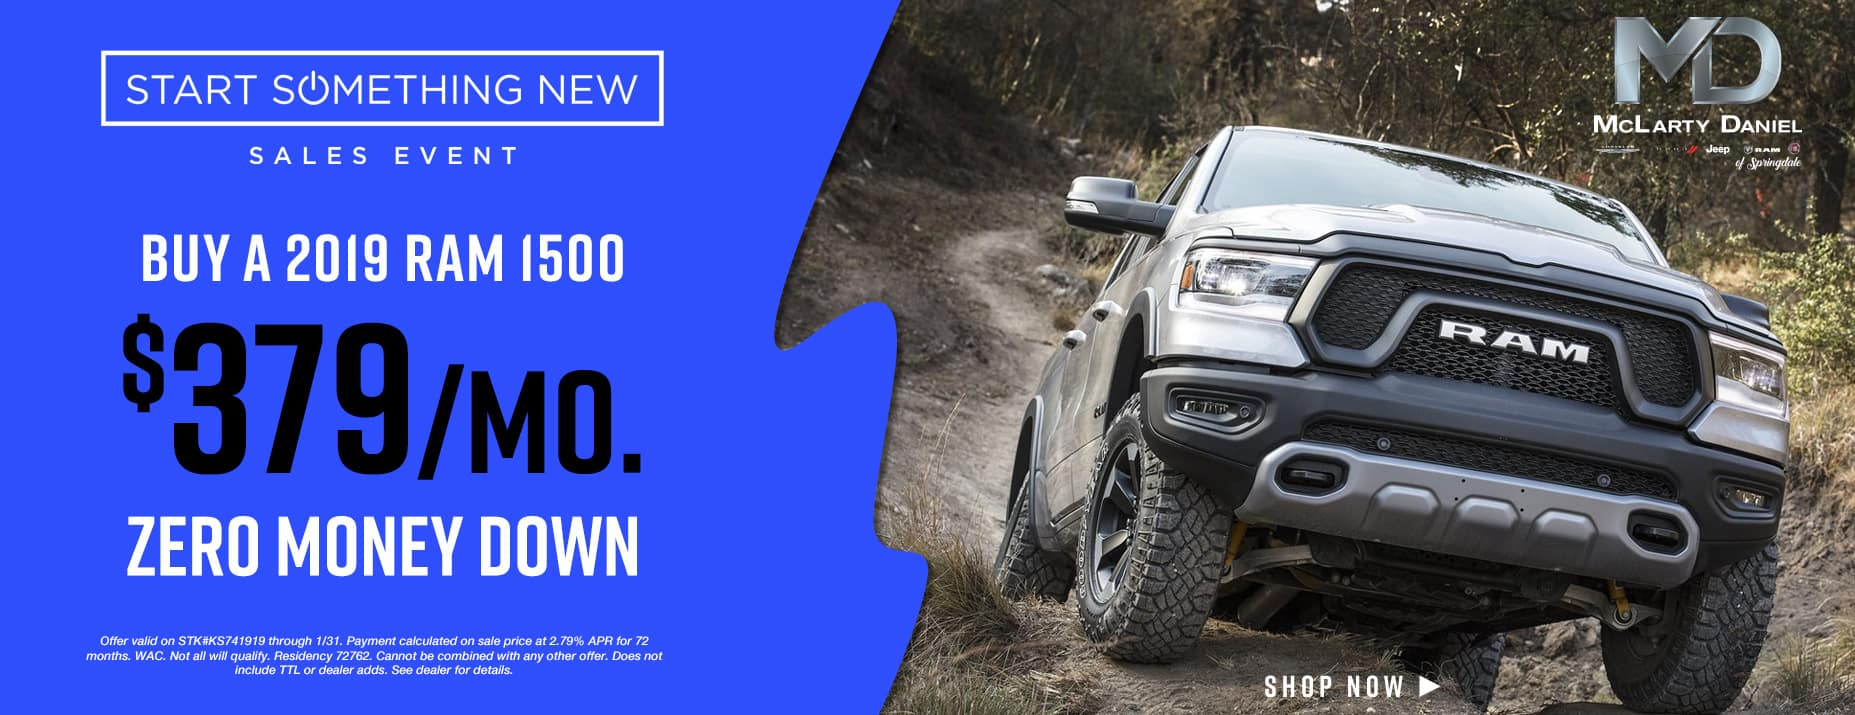 Buy a 2019 RAM 1500 for only$379/mo with no money down!